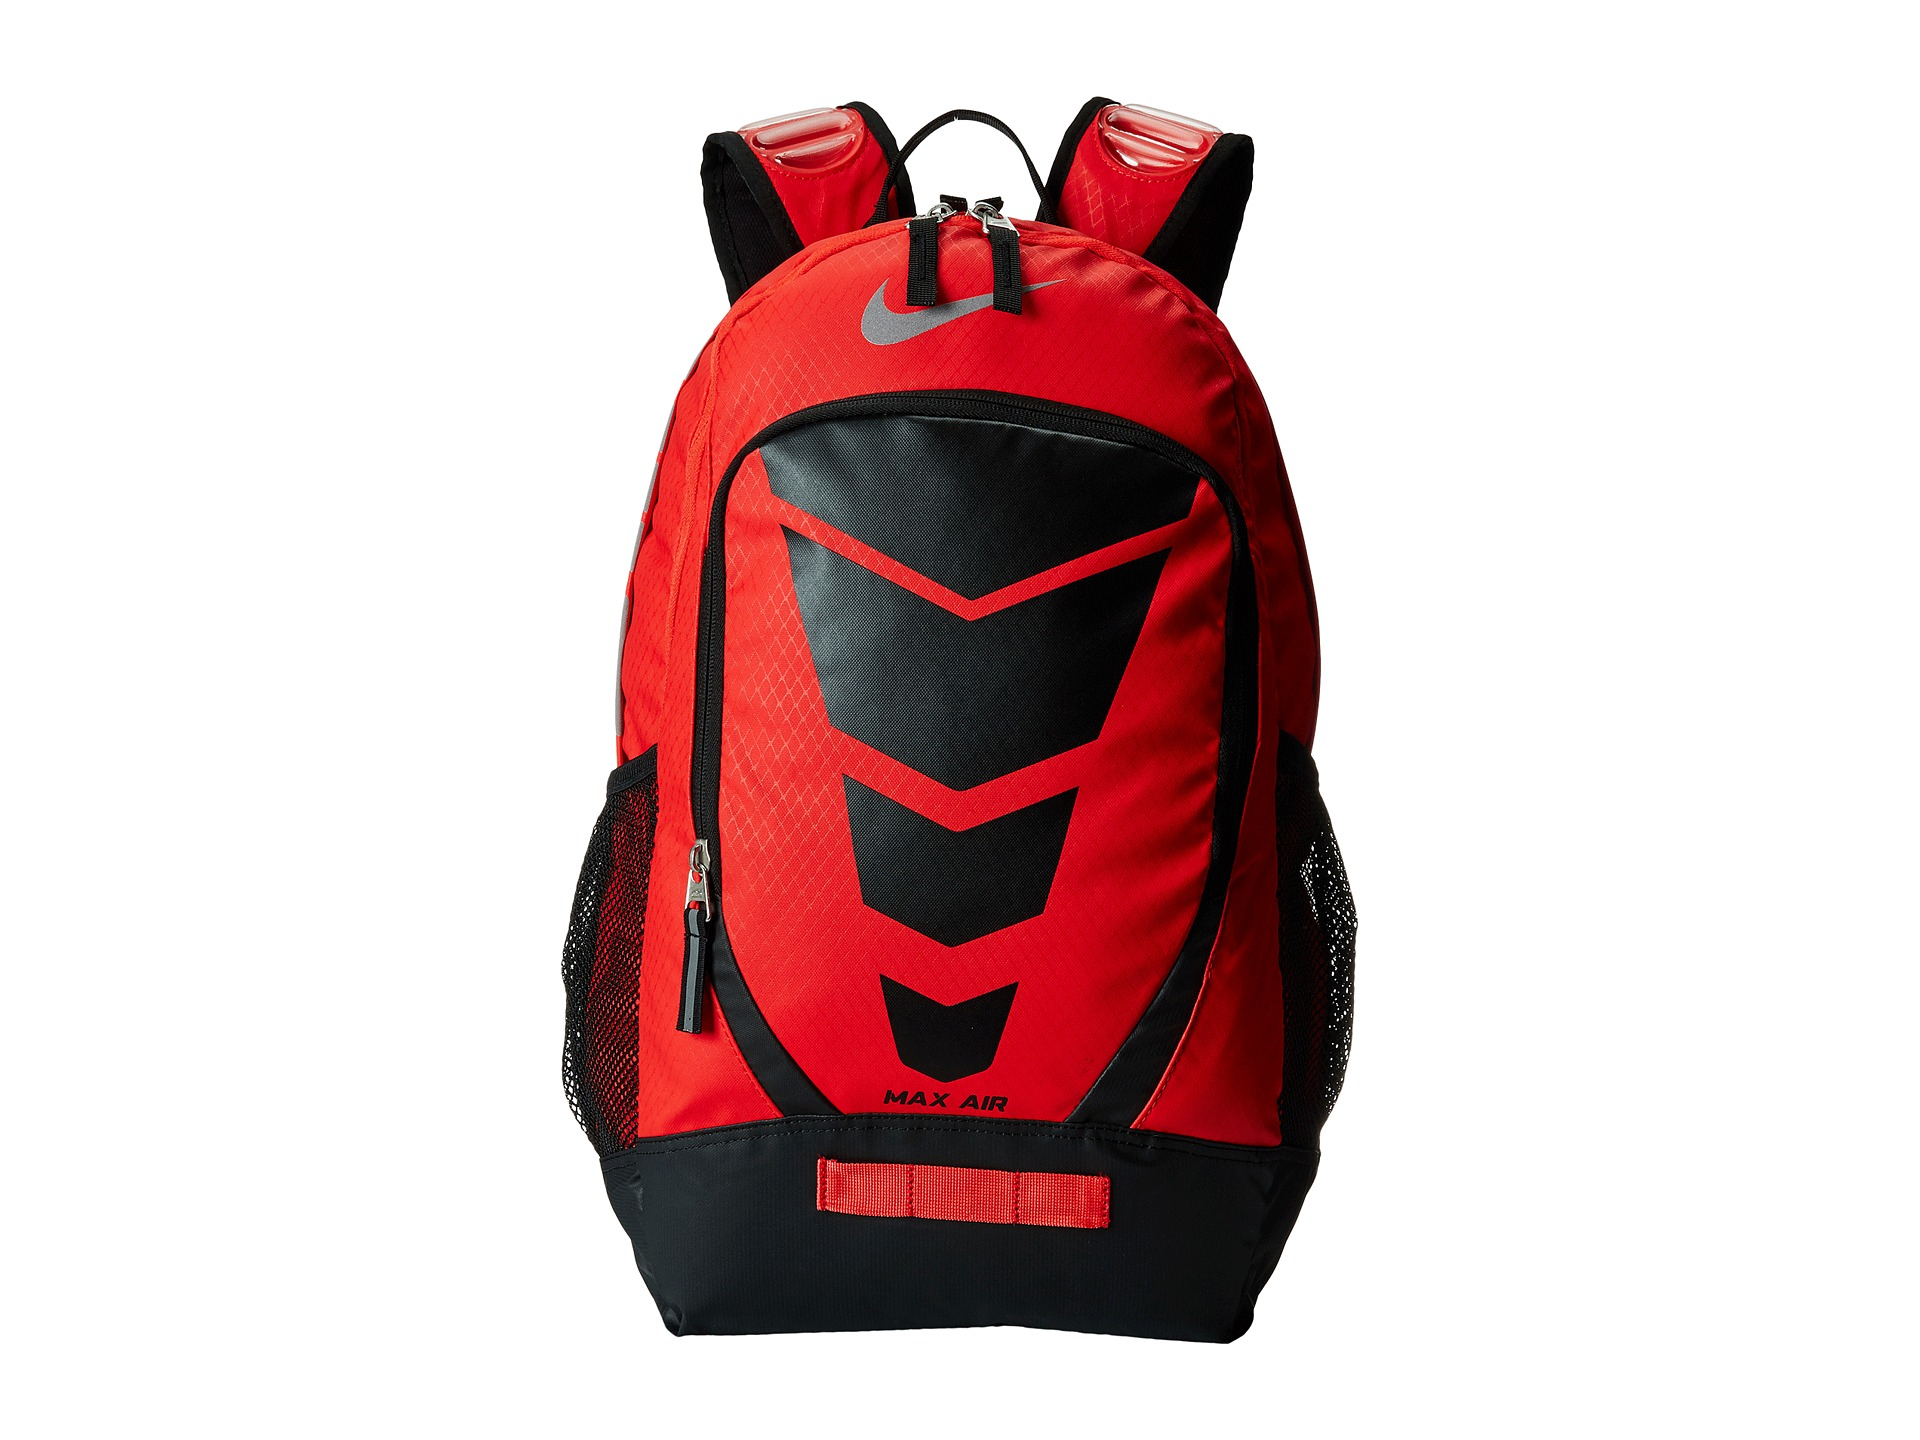 936bff570429 Lyst - Nike Max Air Vapor Backpack in Red for Men